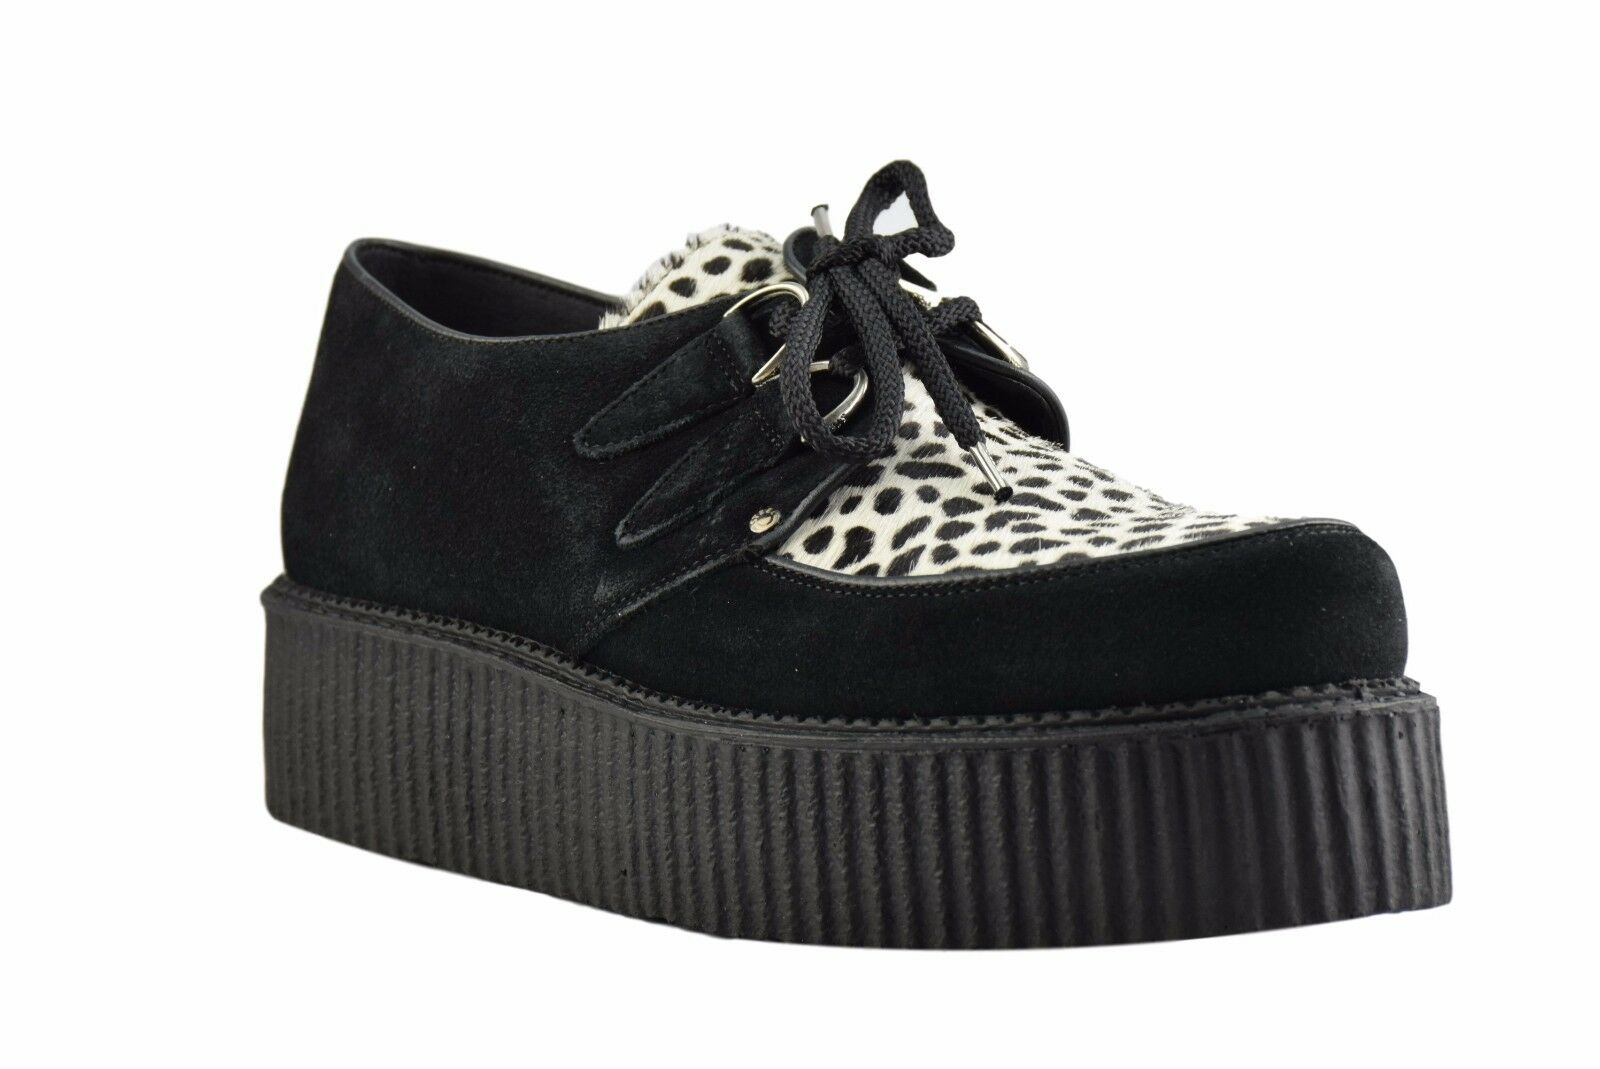 STEEL Ground Scarpe Neri in Pelle Scamosciata Leopardata Creepers alto suola D Anello Casual